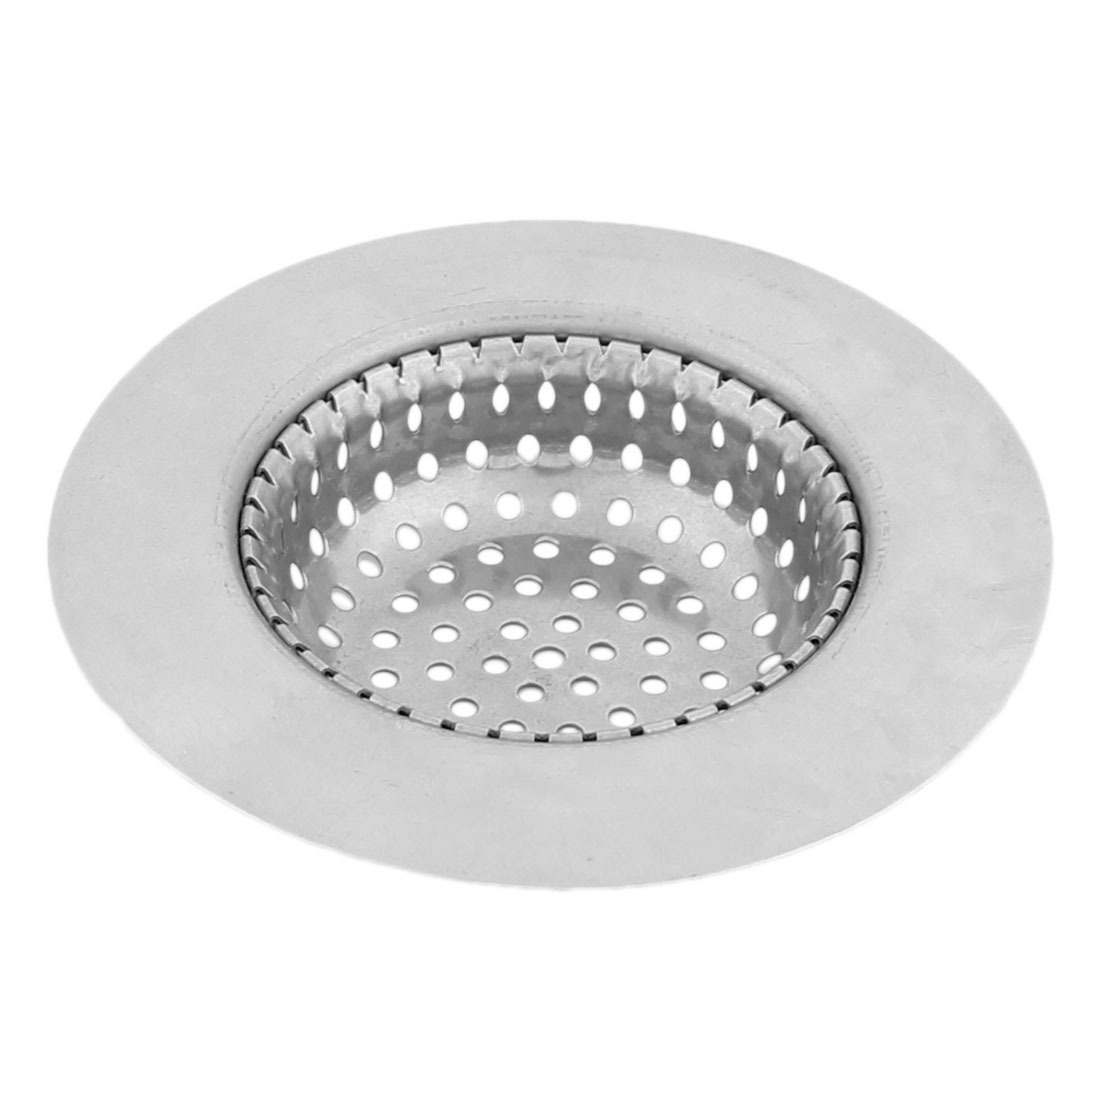 Home Washroom Kitchen Metal Basket Drain Sink Strainer Scraps Stopper Silver Tone